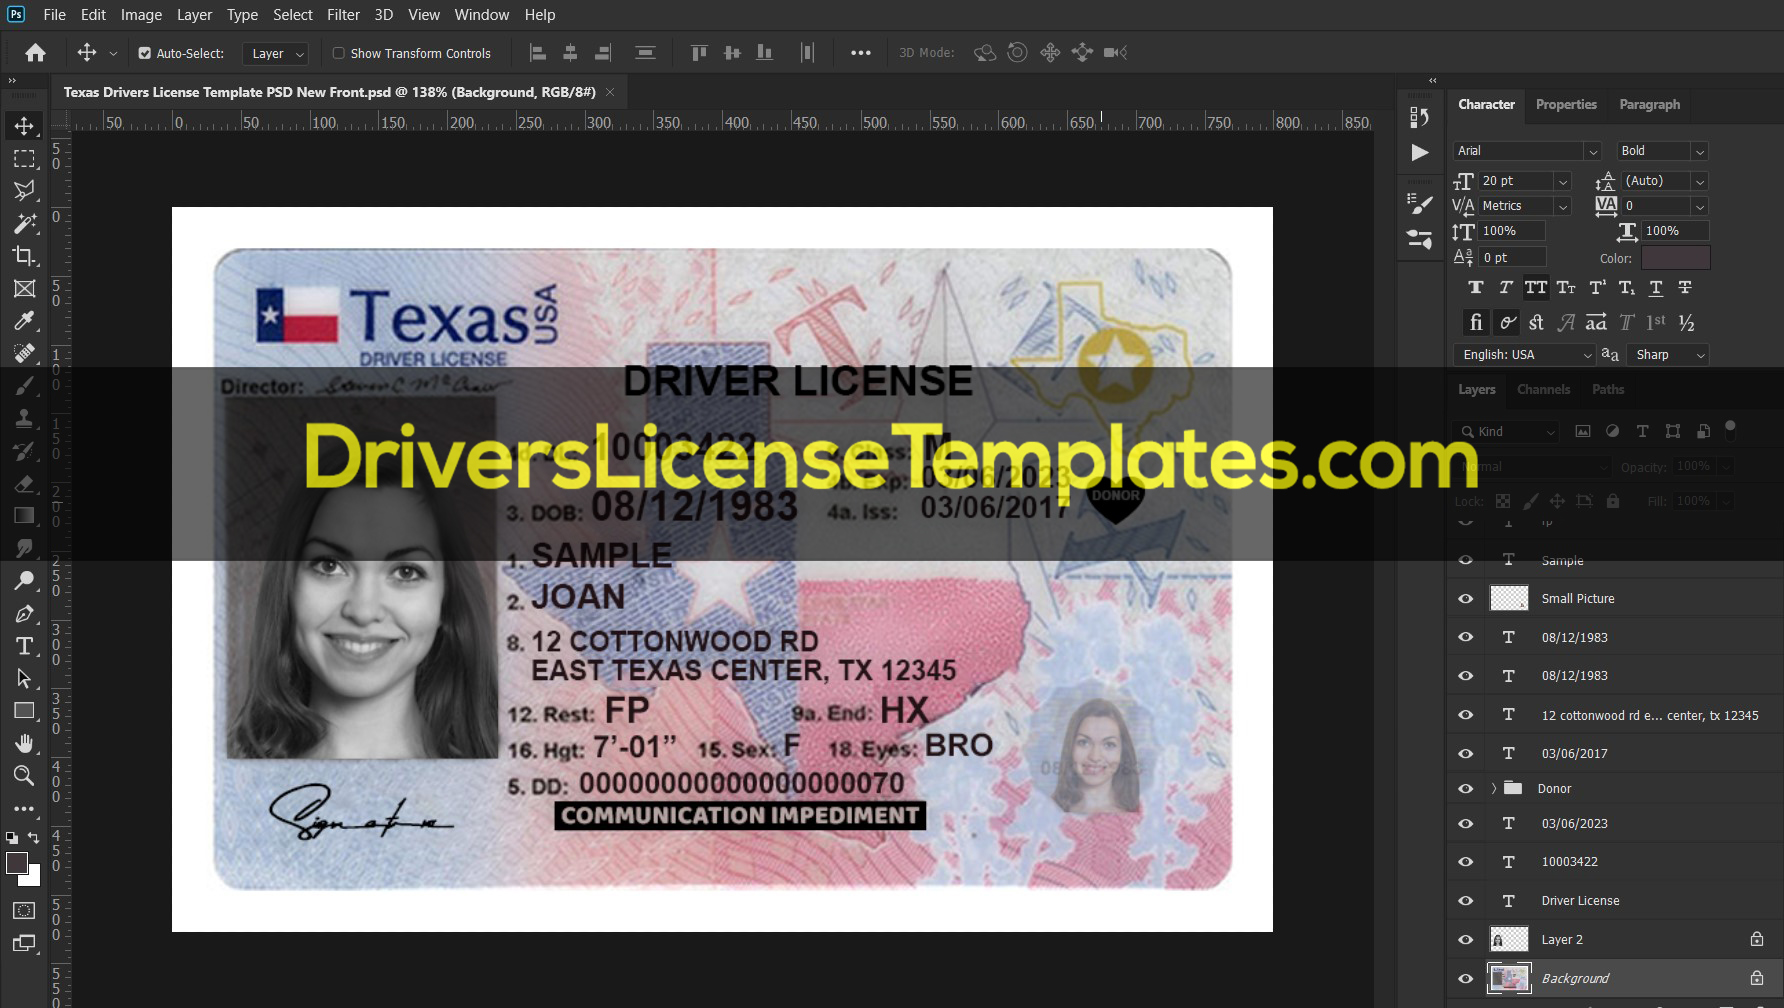 Texas Drivers License Template PSD New Front 2020